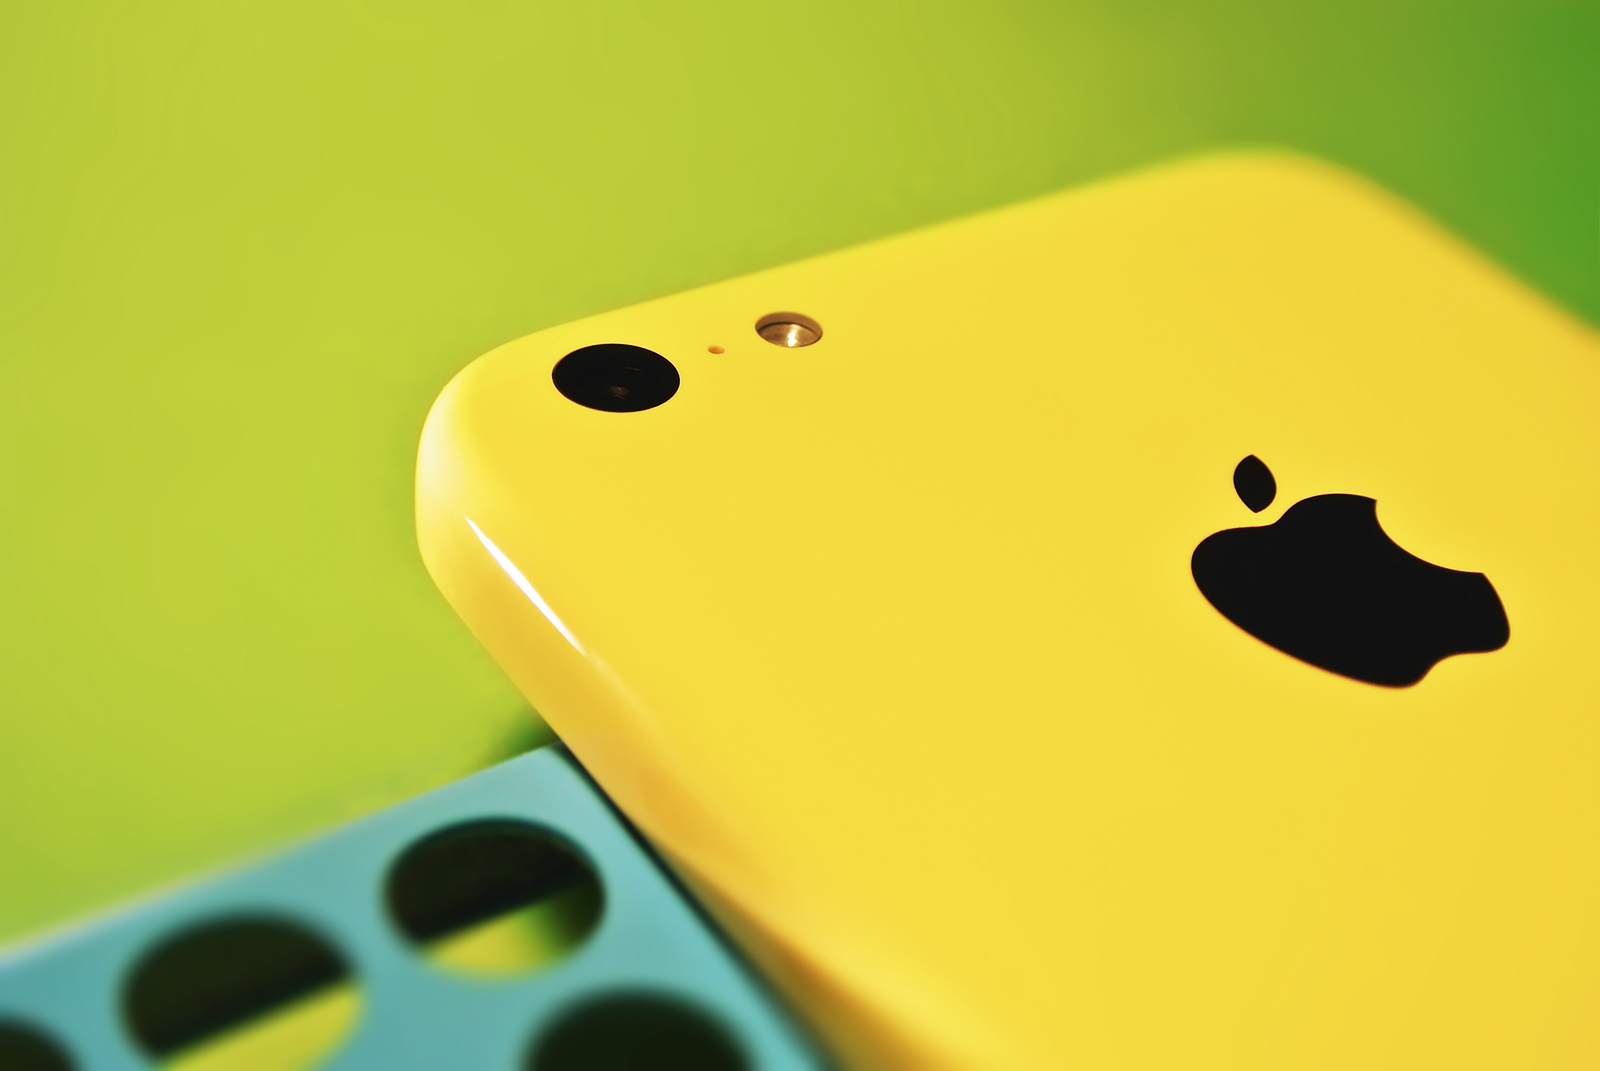 iPhone 5C - David Blum